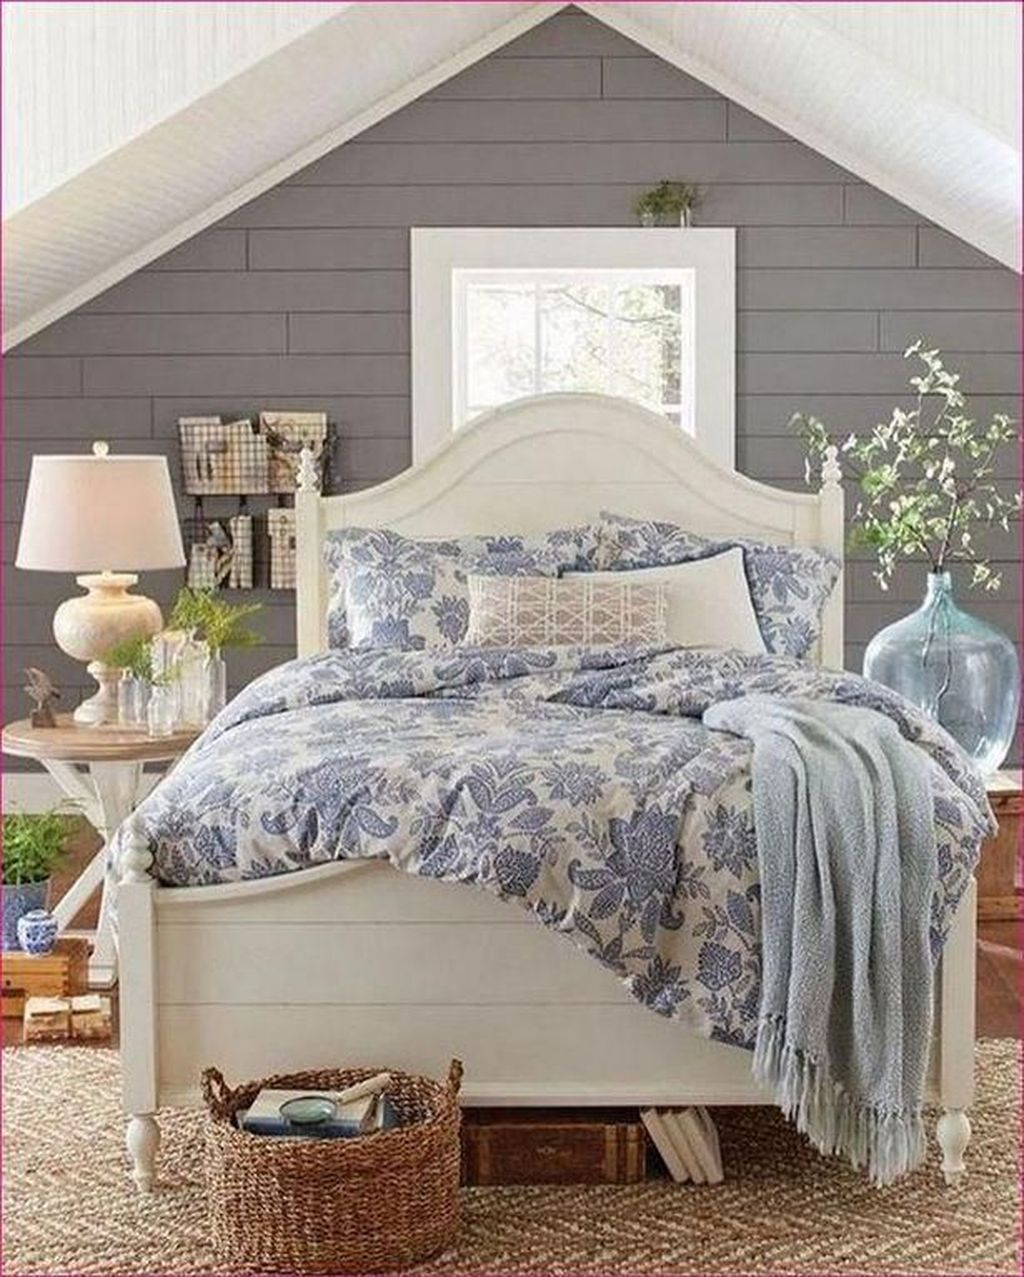 The Best Small Master Bedroom Design Ideas WIth Farmhouse Style 30